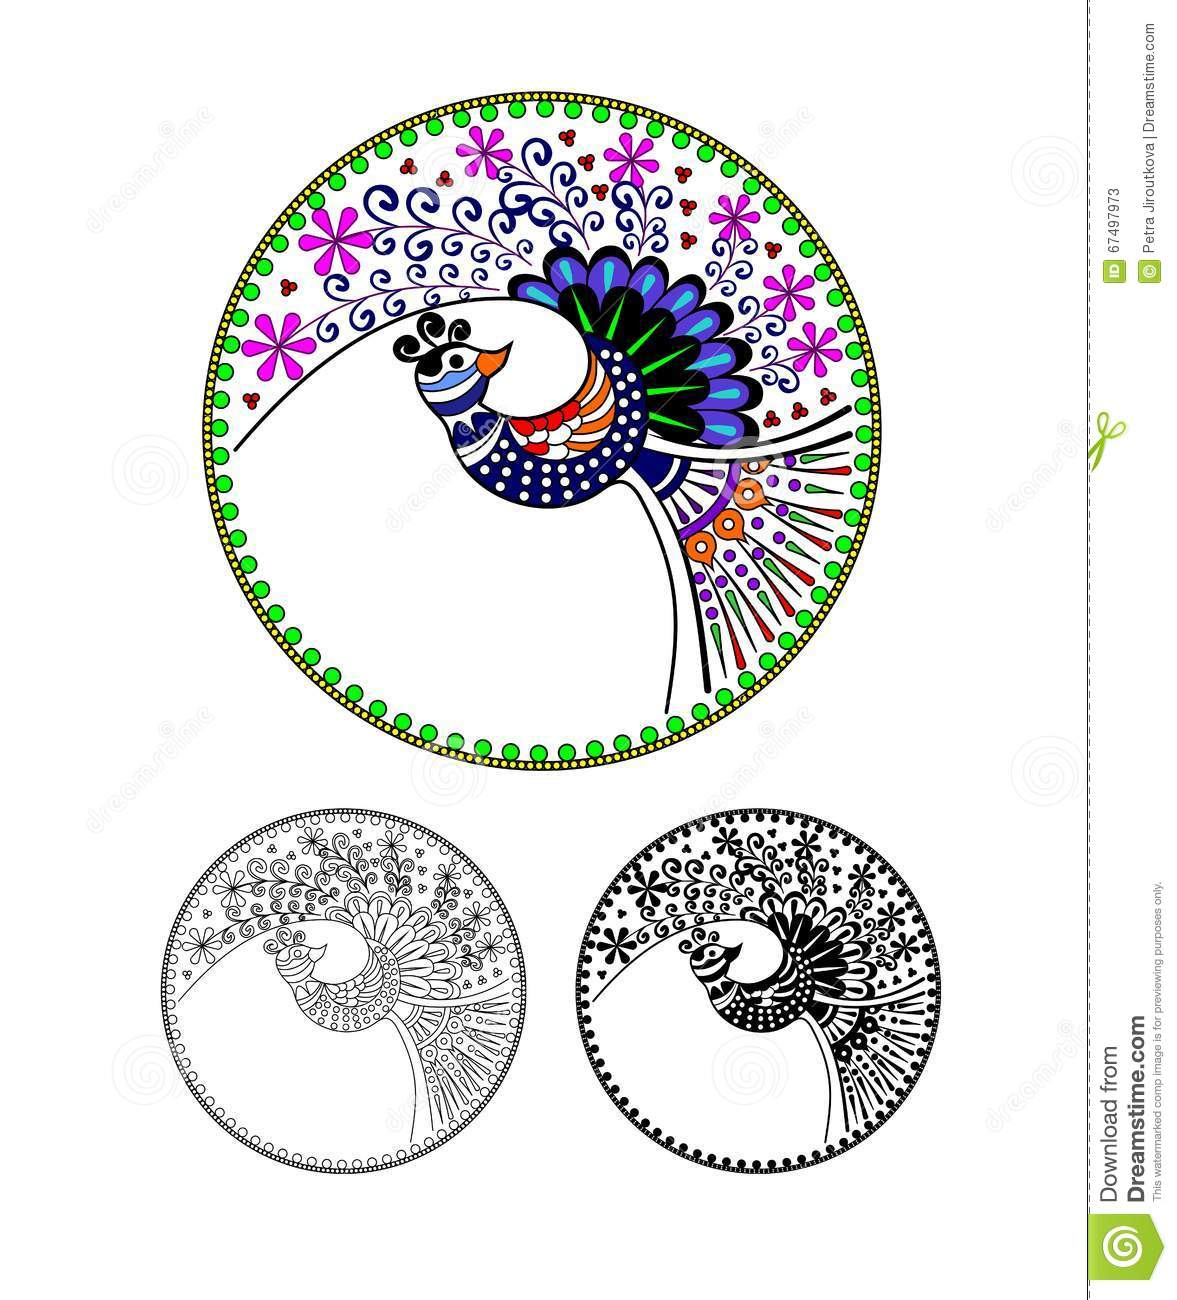 Pavo Cristatus. Peacock, Peafowl, Cartoon Image. Black And White.